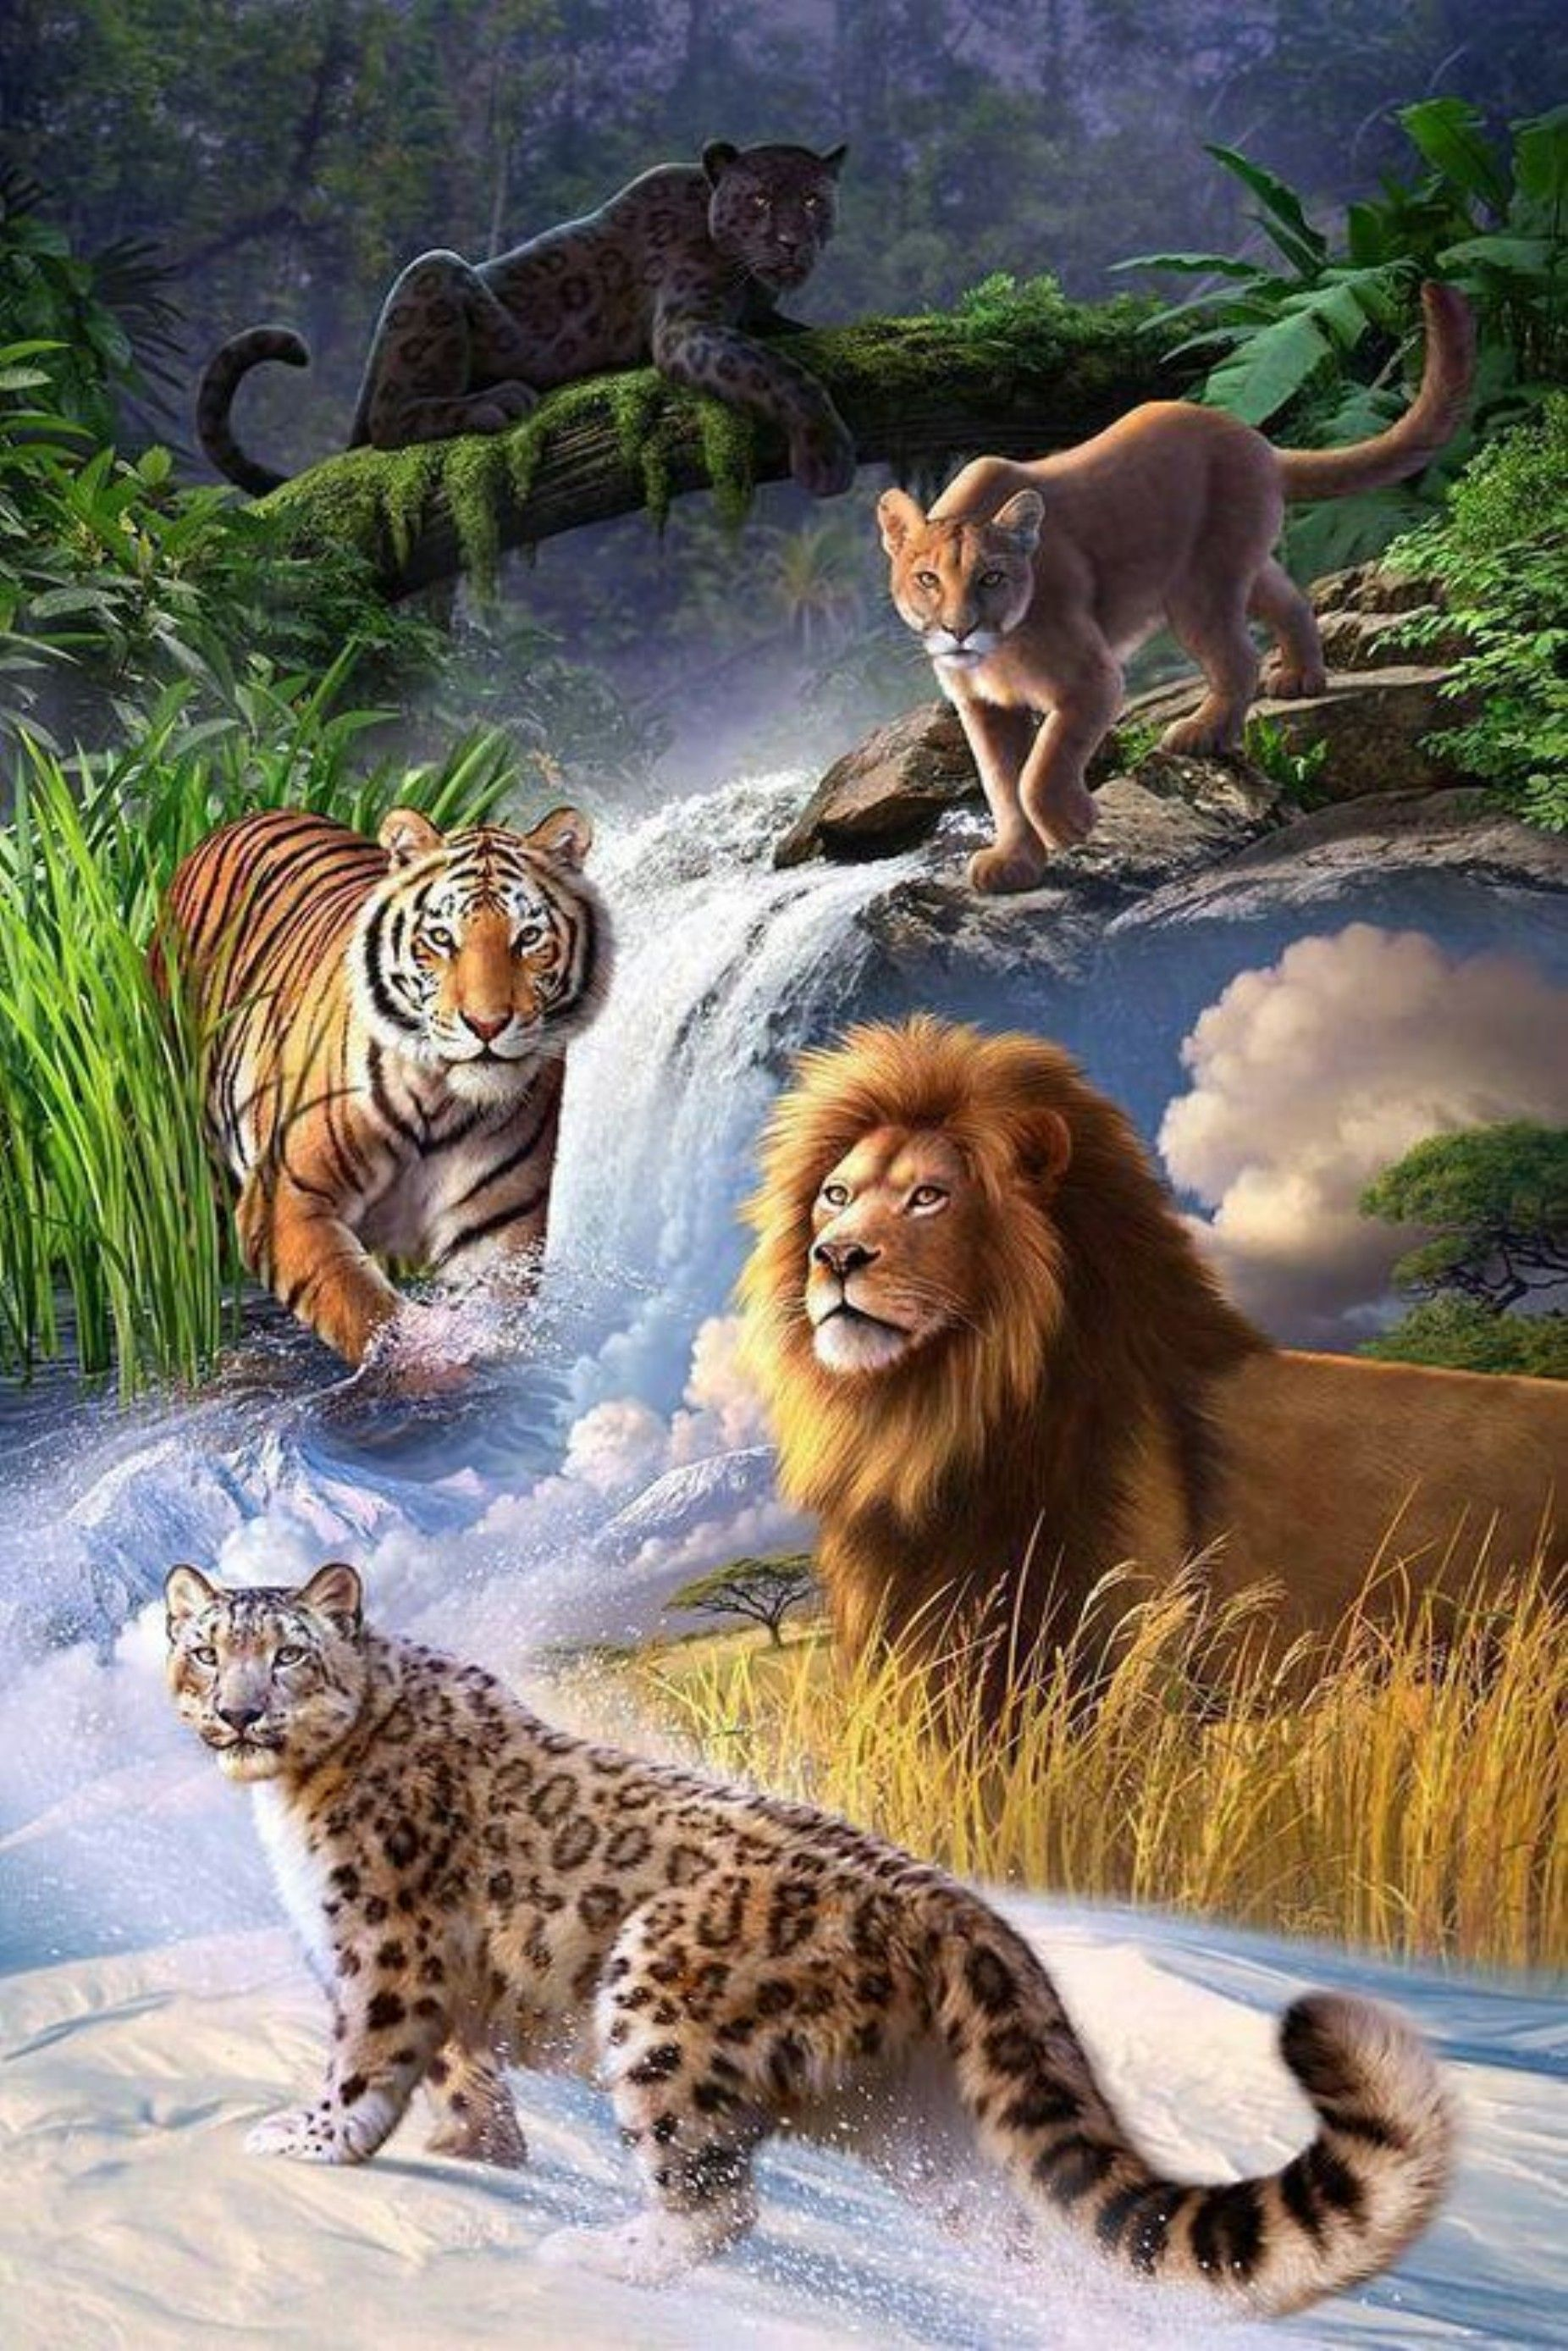 Big Cats Animals Poster Print Metal Posters In 2020 With Images